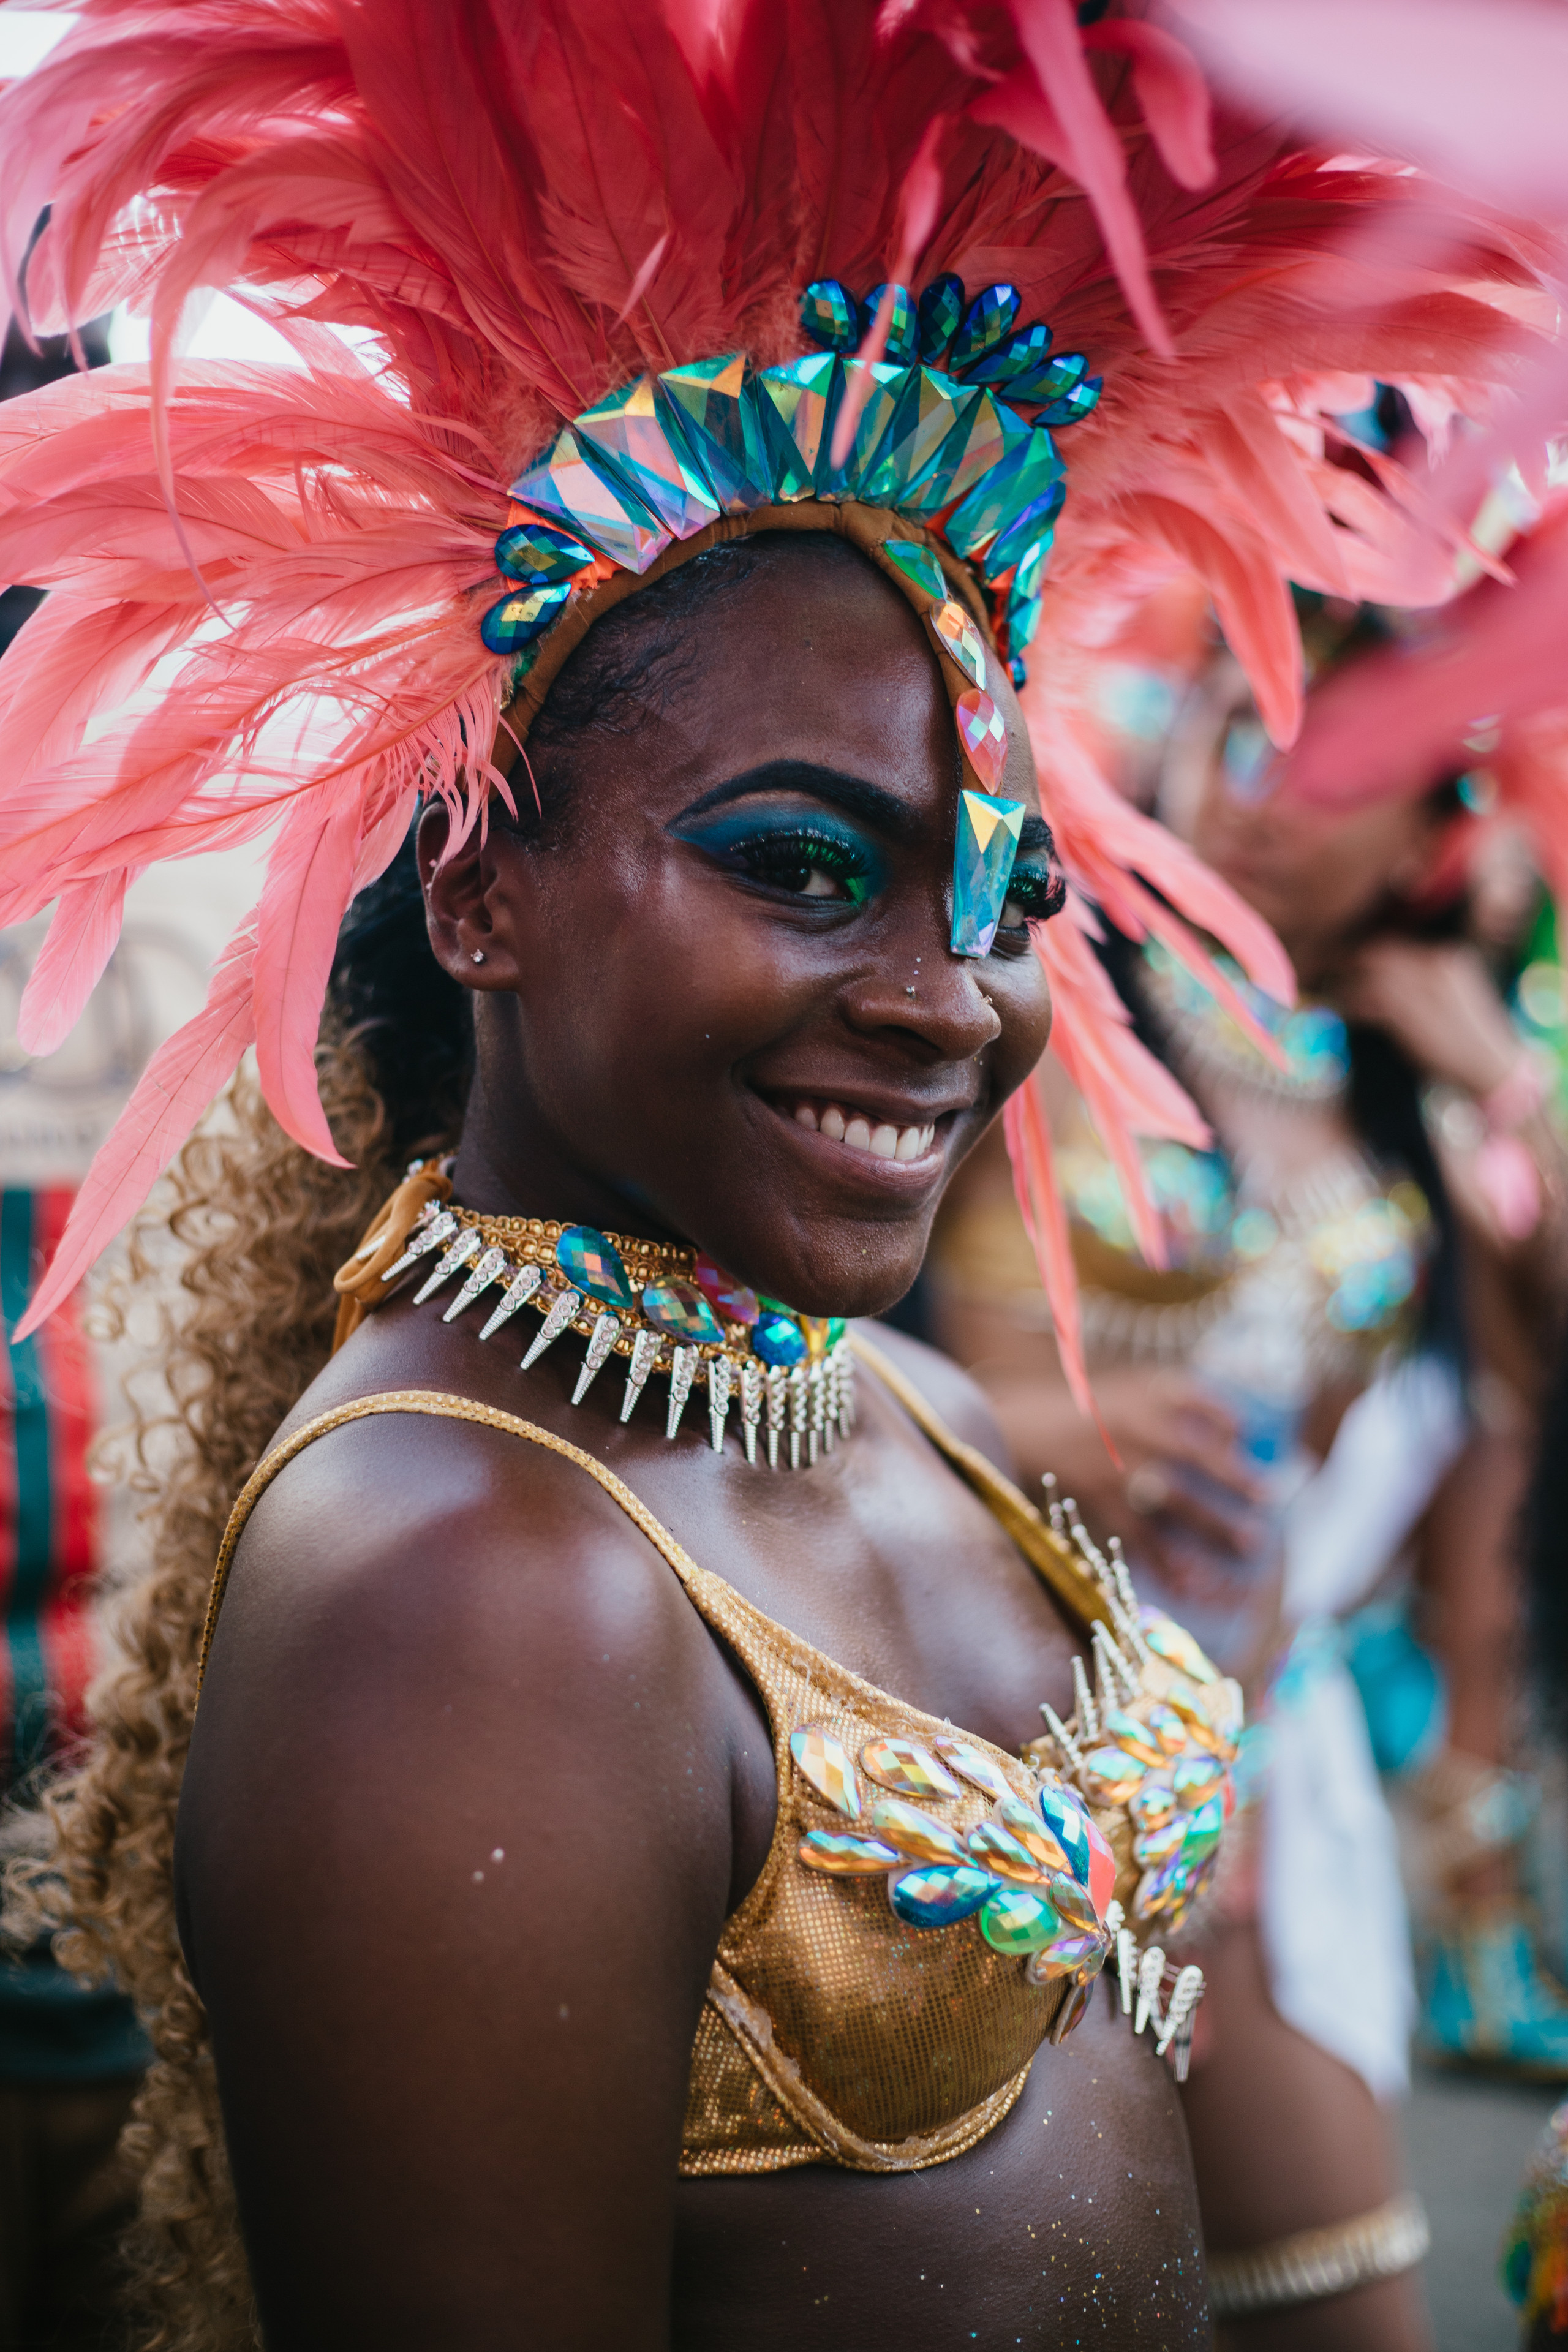 Carnival Parade on St. Croix in the Virgin Islands |Fete in the Street | On the Road | St. Croix Wedding Photographer | St. John Wedding | Carnival Feathers | Caribbean Troupes | Carnival Parade| Charlotte Amalie | Rhinestones and Feathers | Destination Wedding Photographer | Traveling Photographer | Kitchen Prep | Rad Couples | St. Thomas | Island Vibes | Soca Music Dancing| Virgin Islands| Meredith Zimmerman Photography